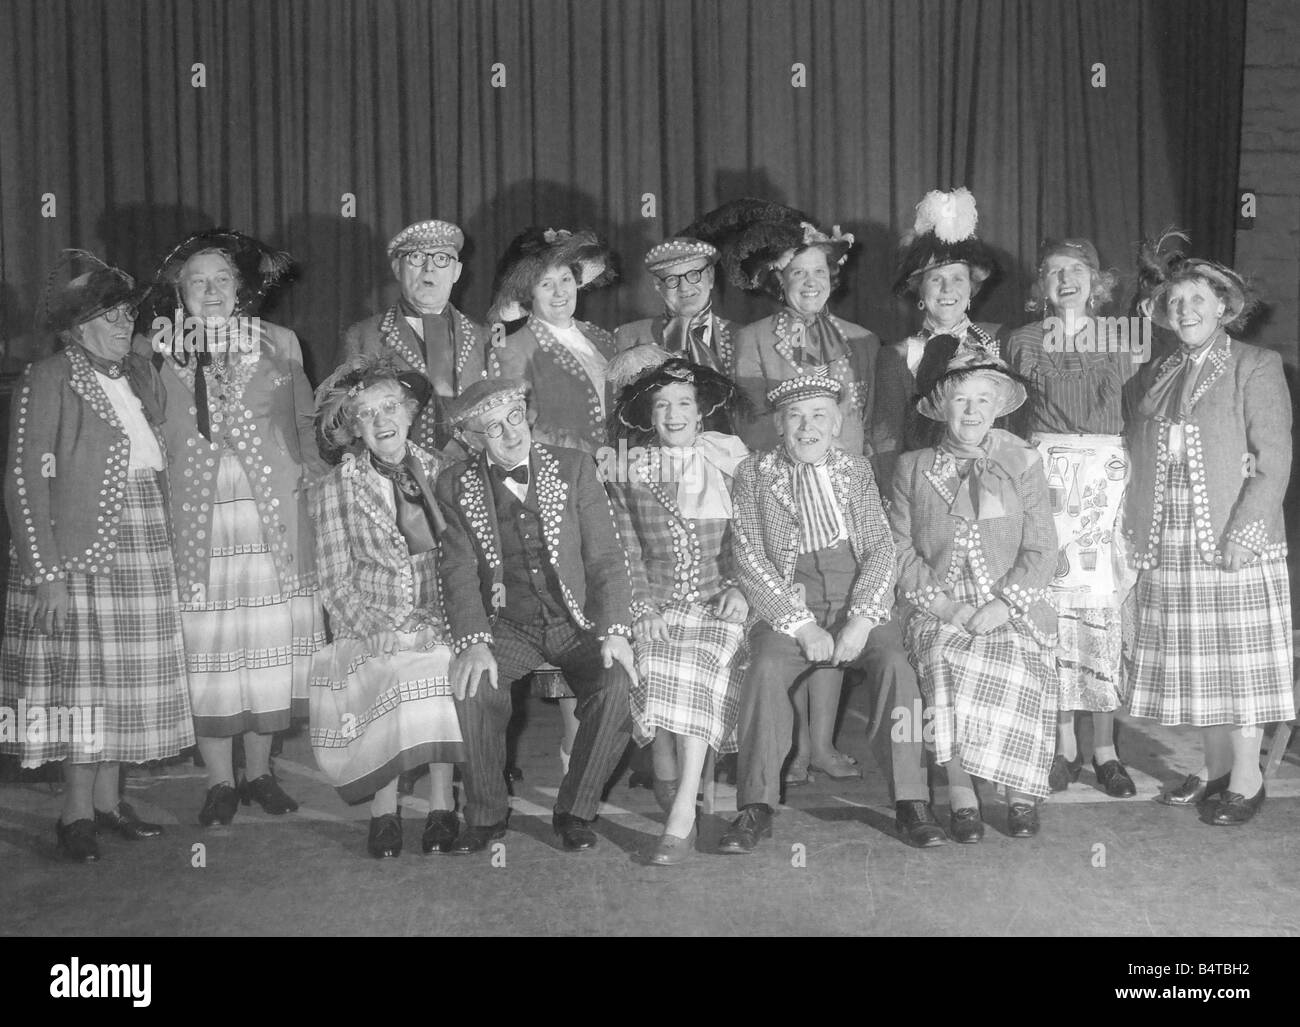 Pearly kings and queens concert party - Stock Image